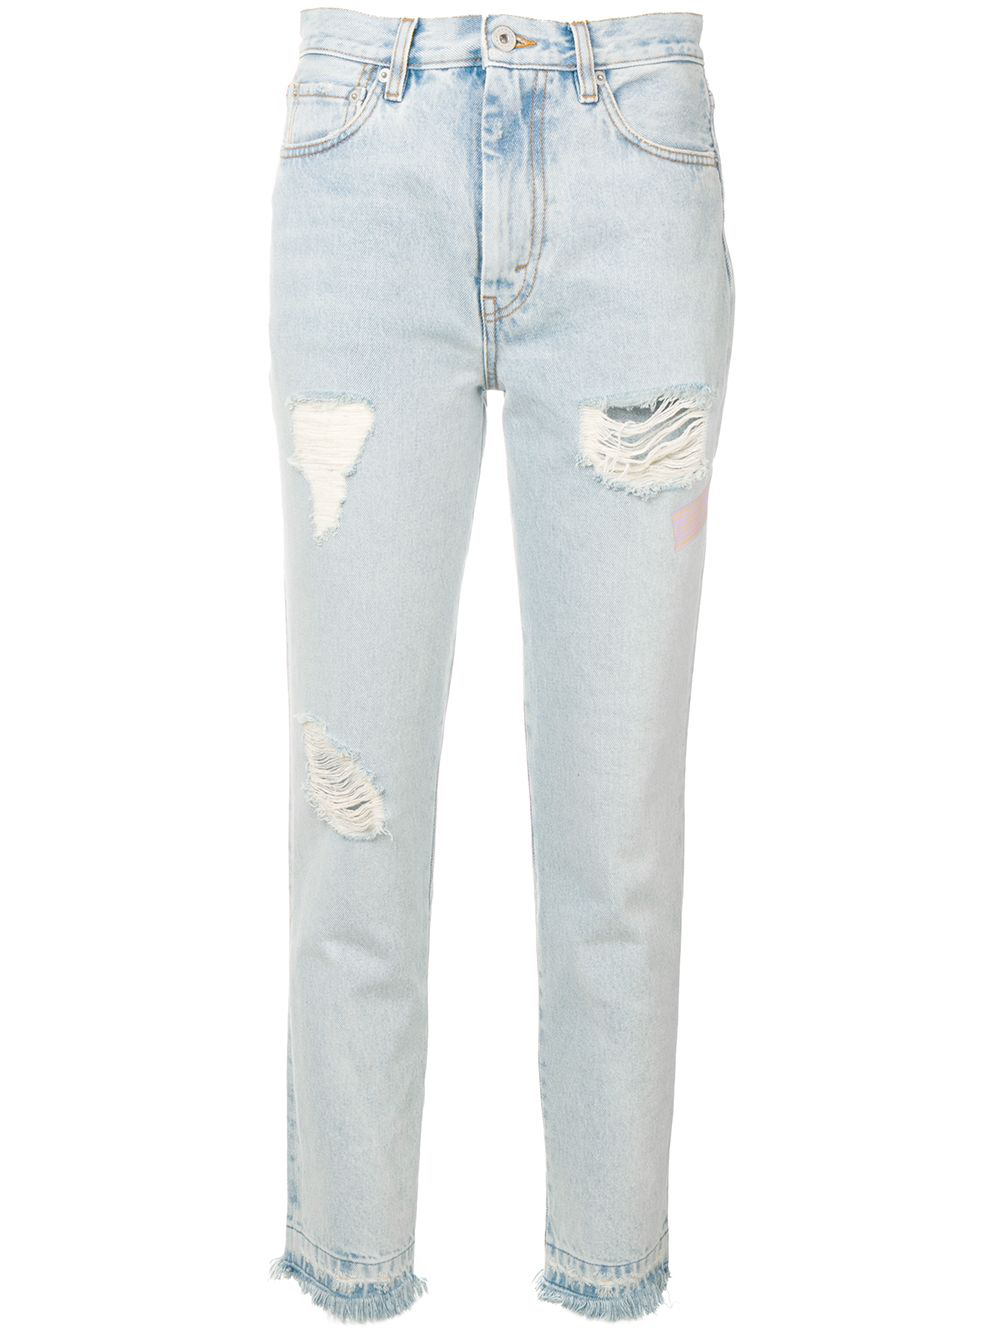 be97045d1 Heron Preston Jeans In Distressed-Optik - Blau In Blue | ModeSens